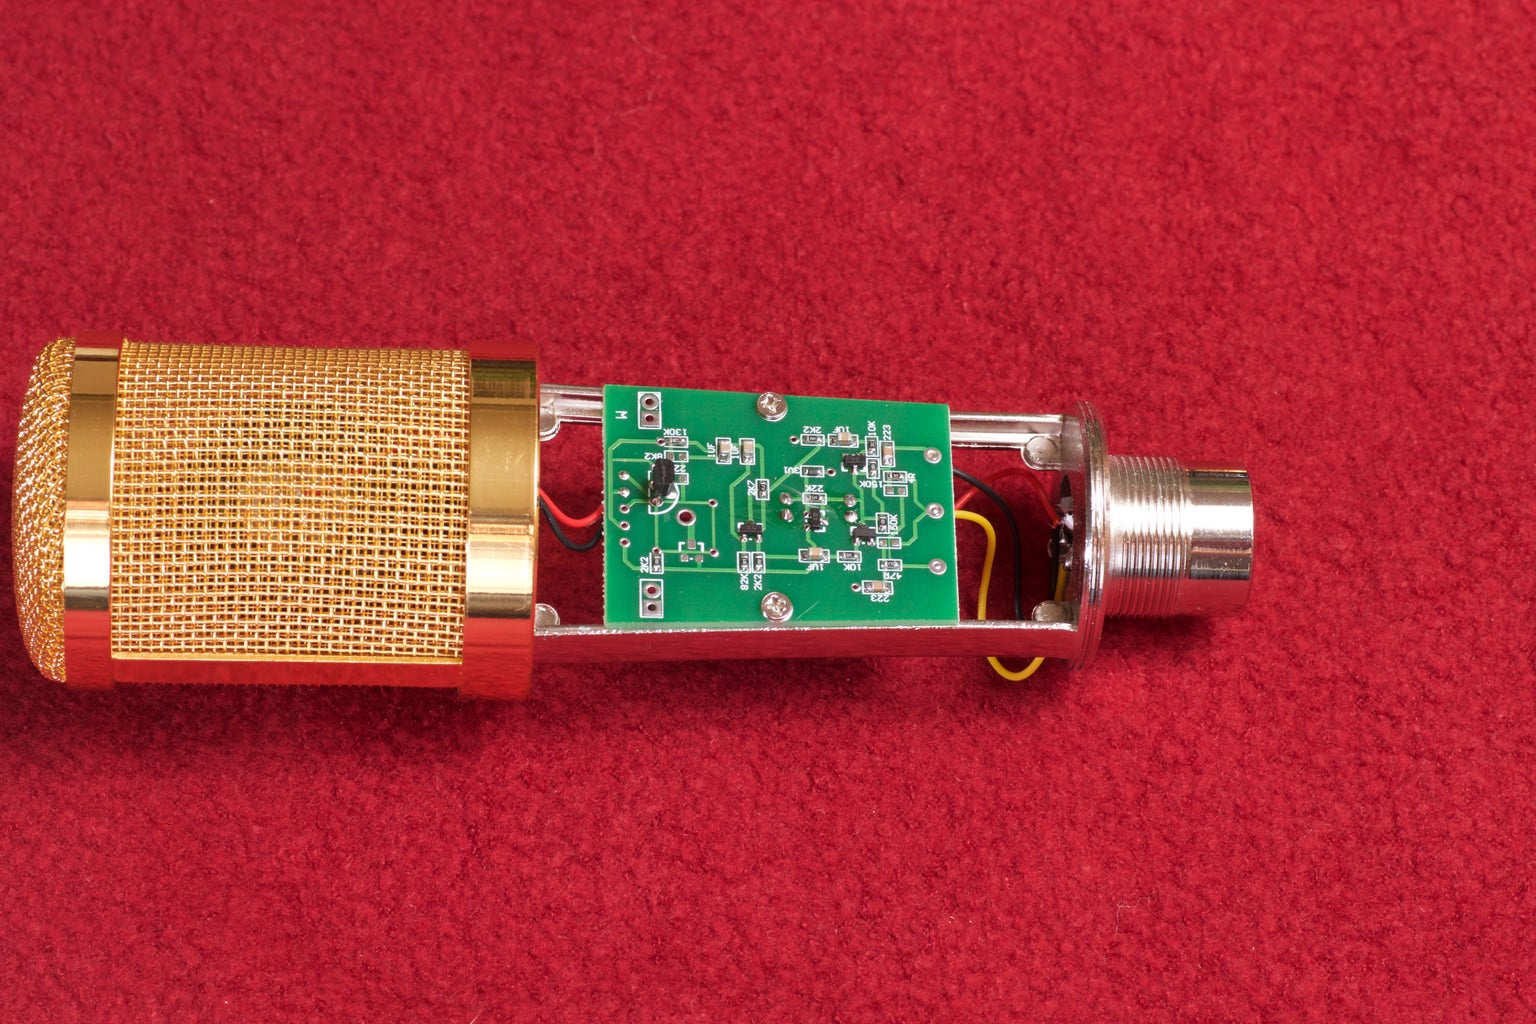 Step Two: Disassemble the Original Microphone